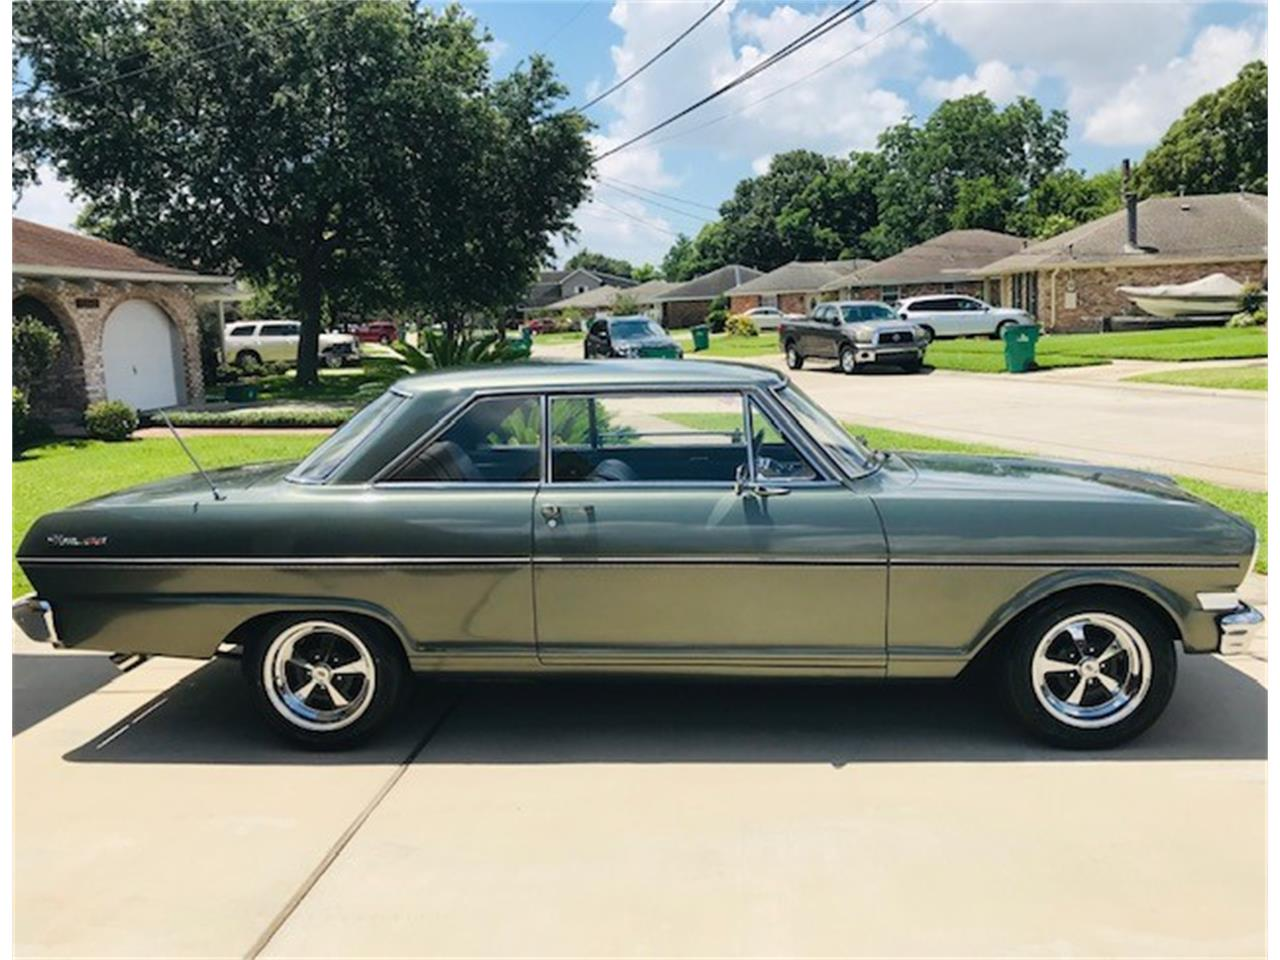 1963 Chevrolet Chevy II Nova SS for sale in Metairie, LA – photo 11